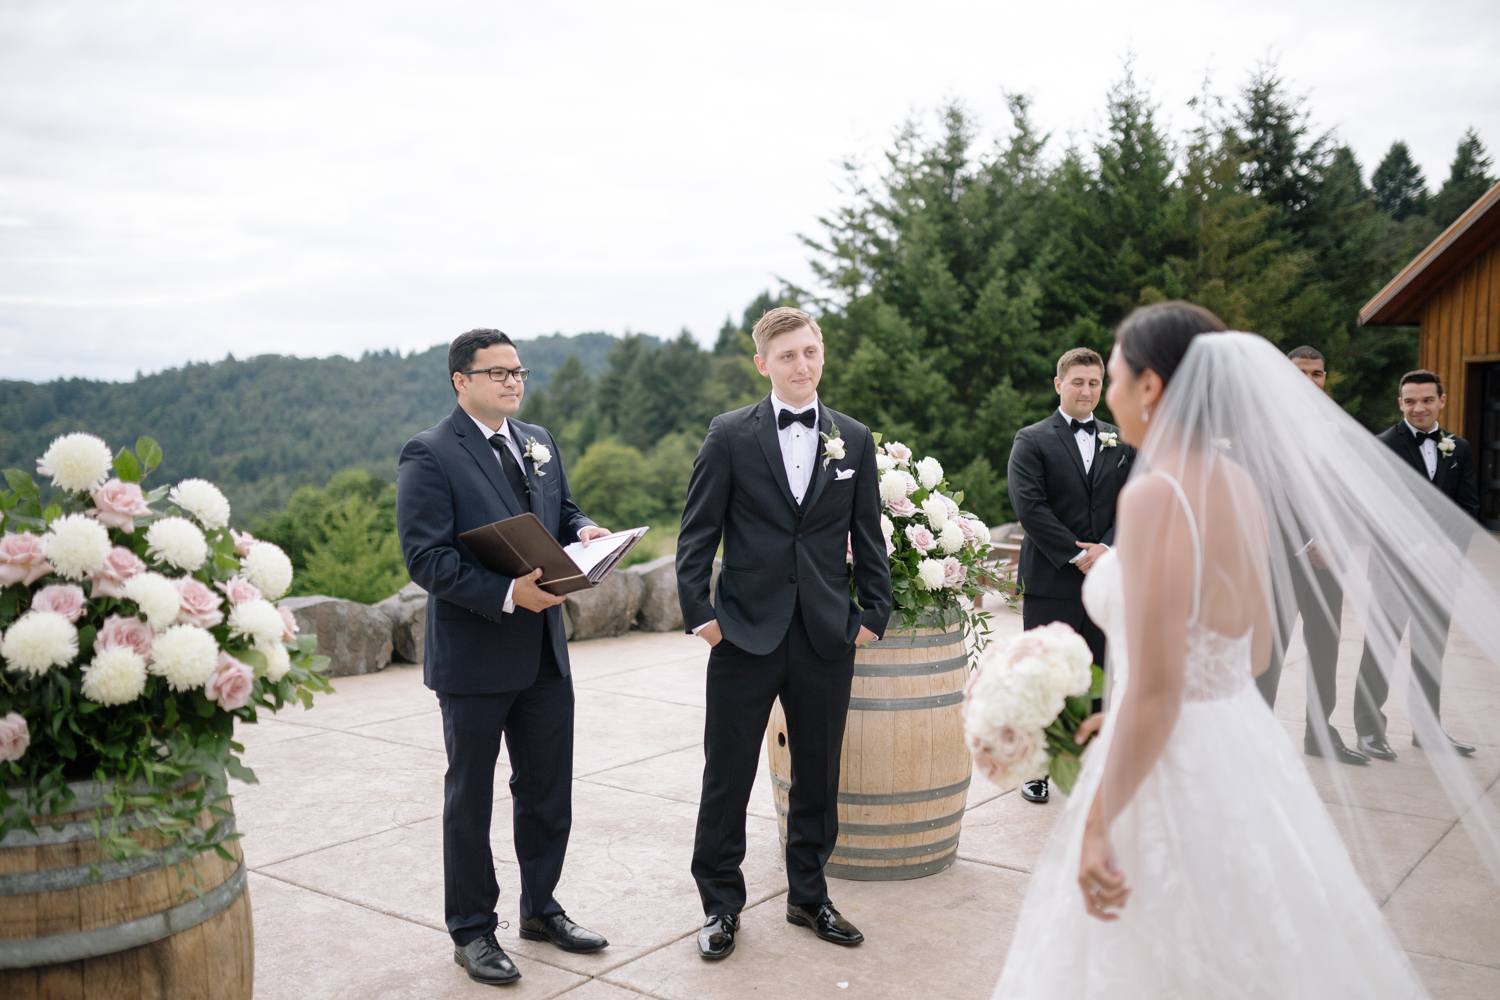 Youngberg Hill Vineyard Wedding in Wine Country Oregon - Corrie Mick Photography-273.jpg